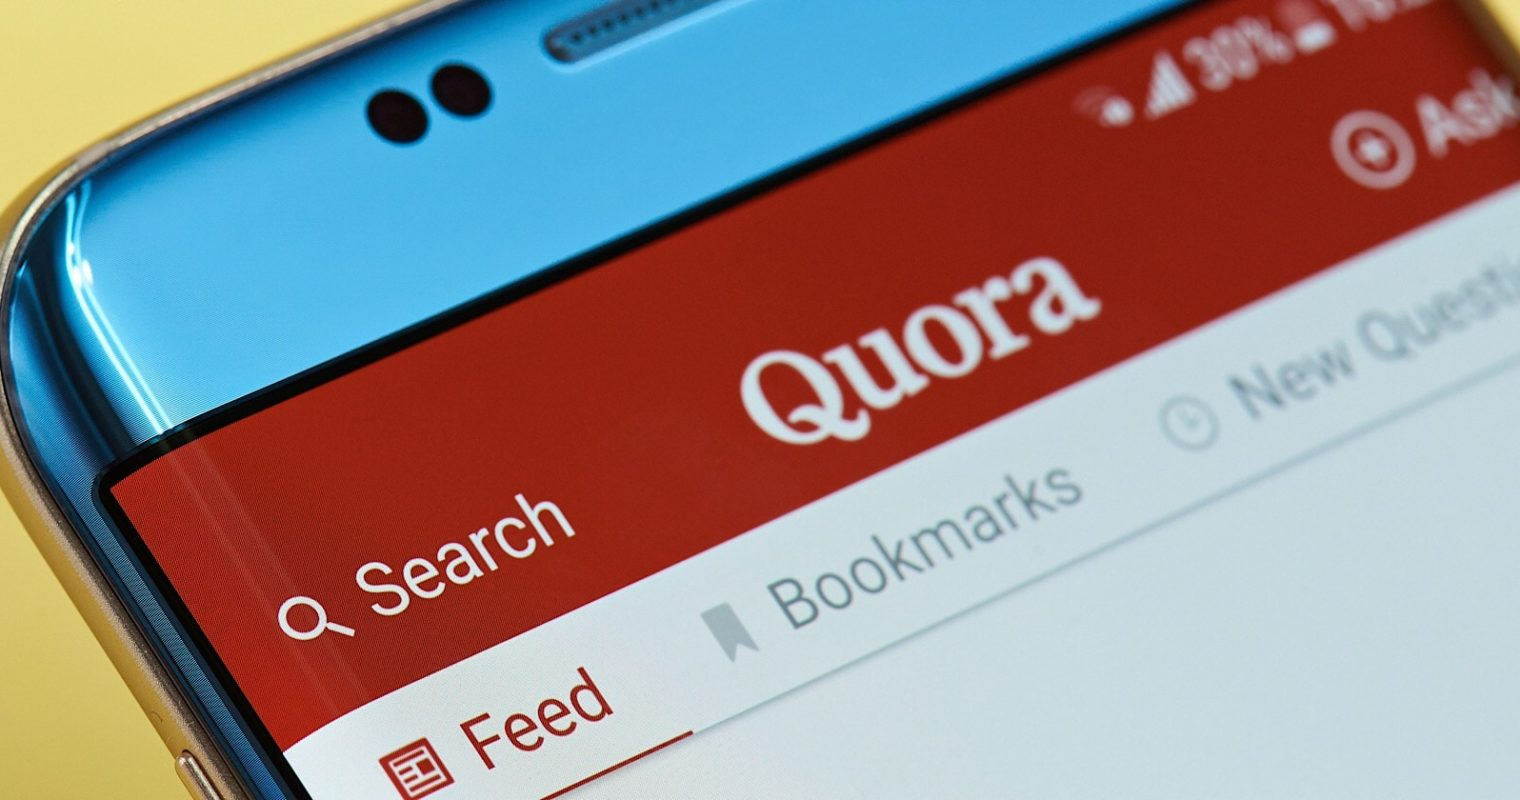 Google Adds Carousel of Quora 'Top Answers' to Search Results